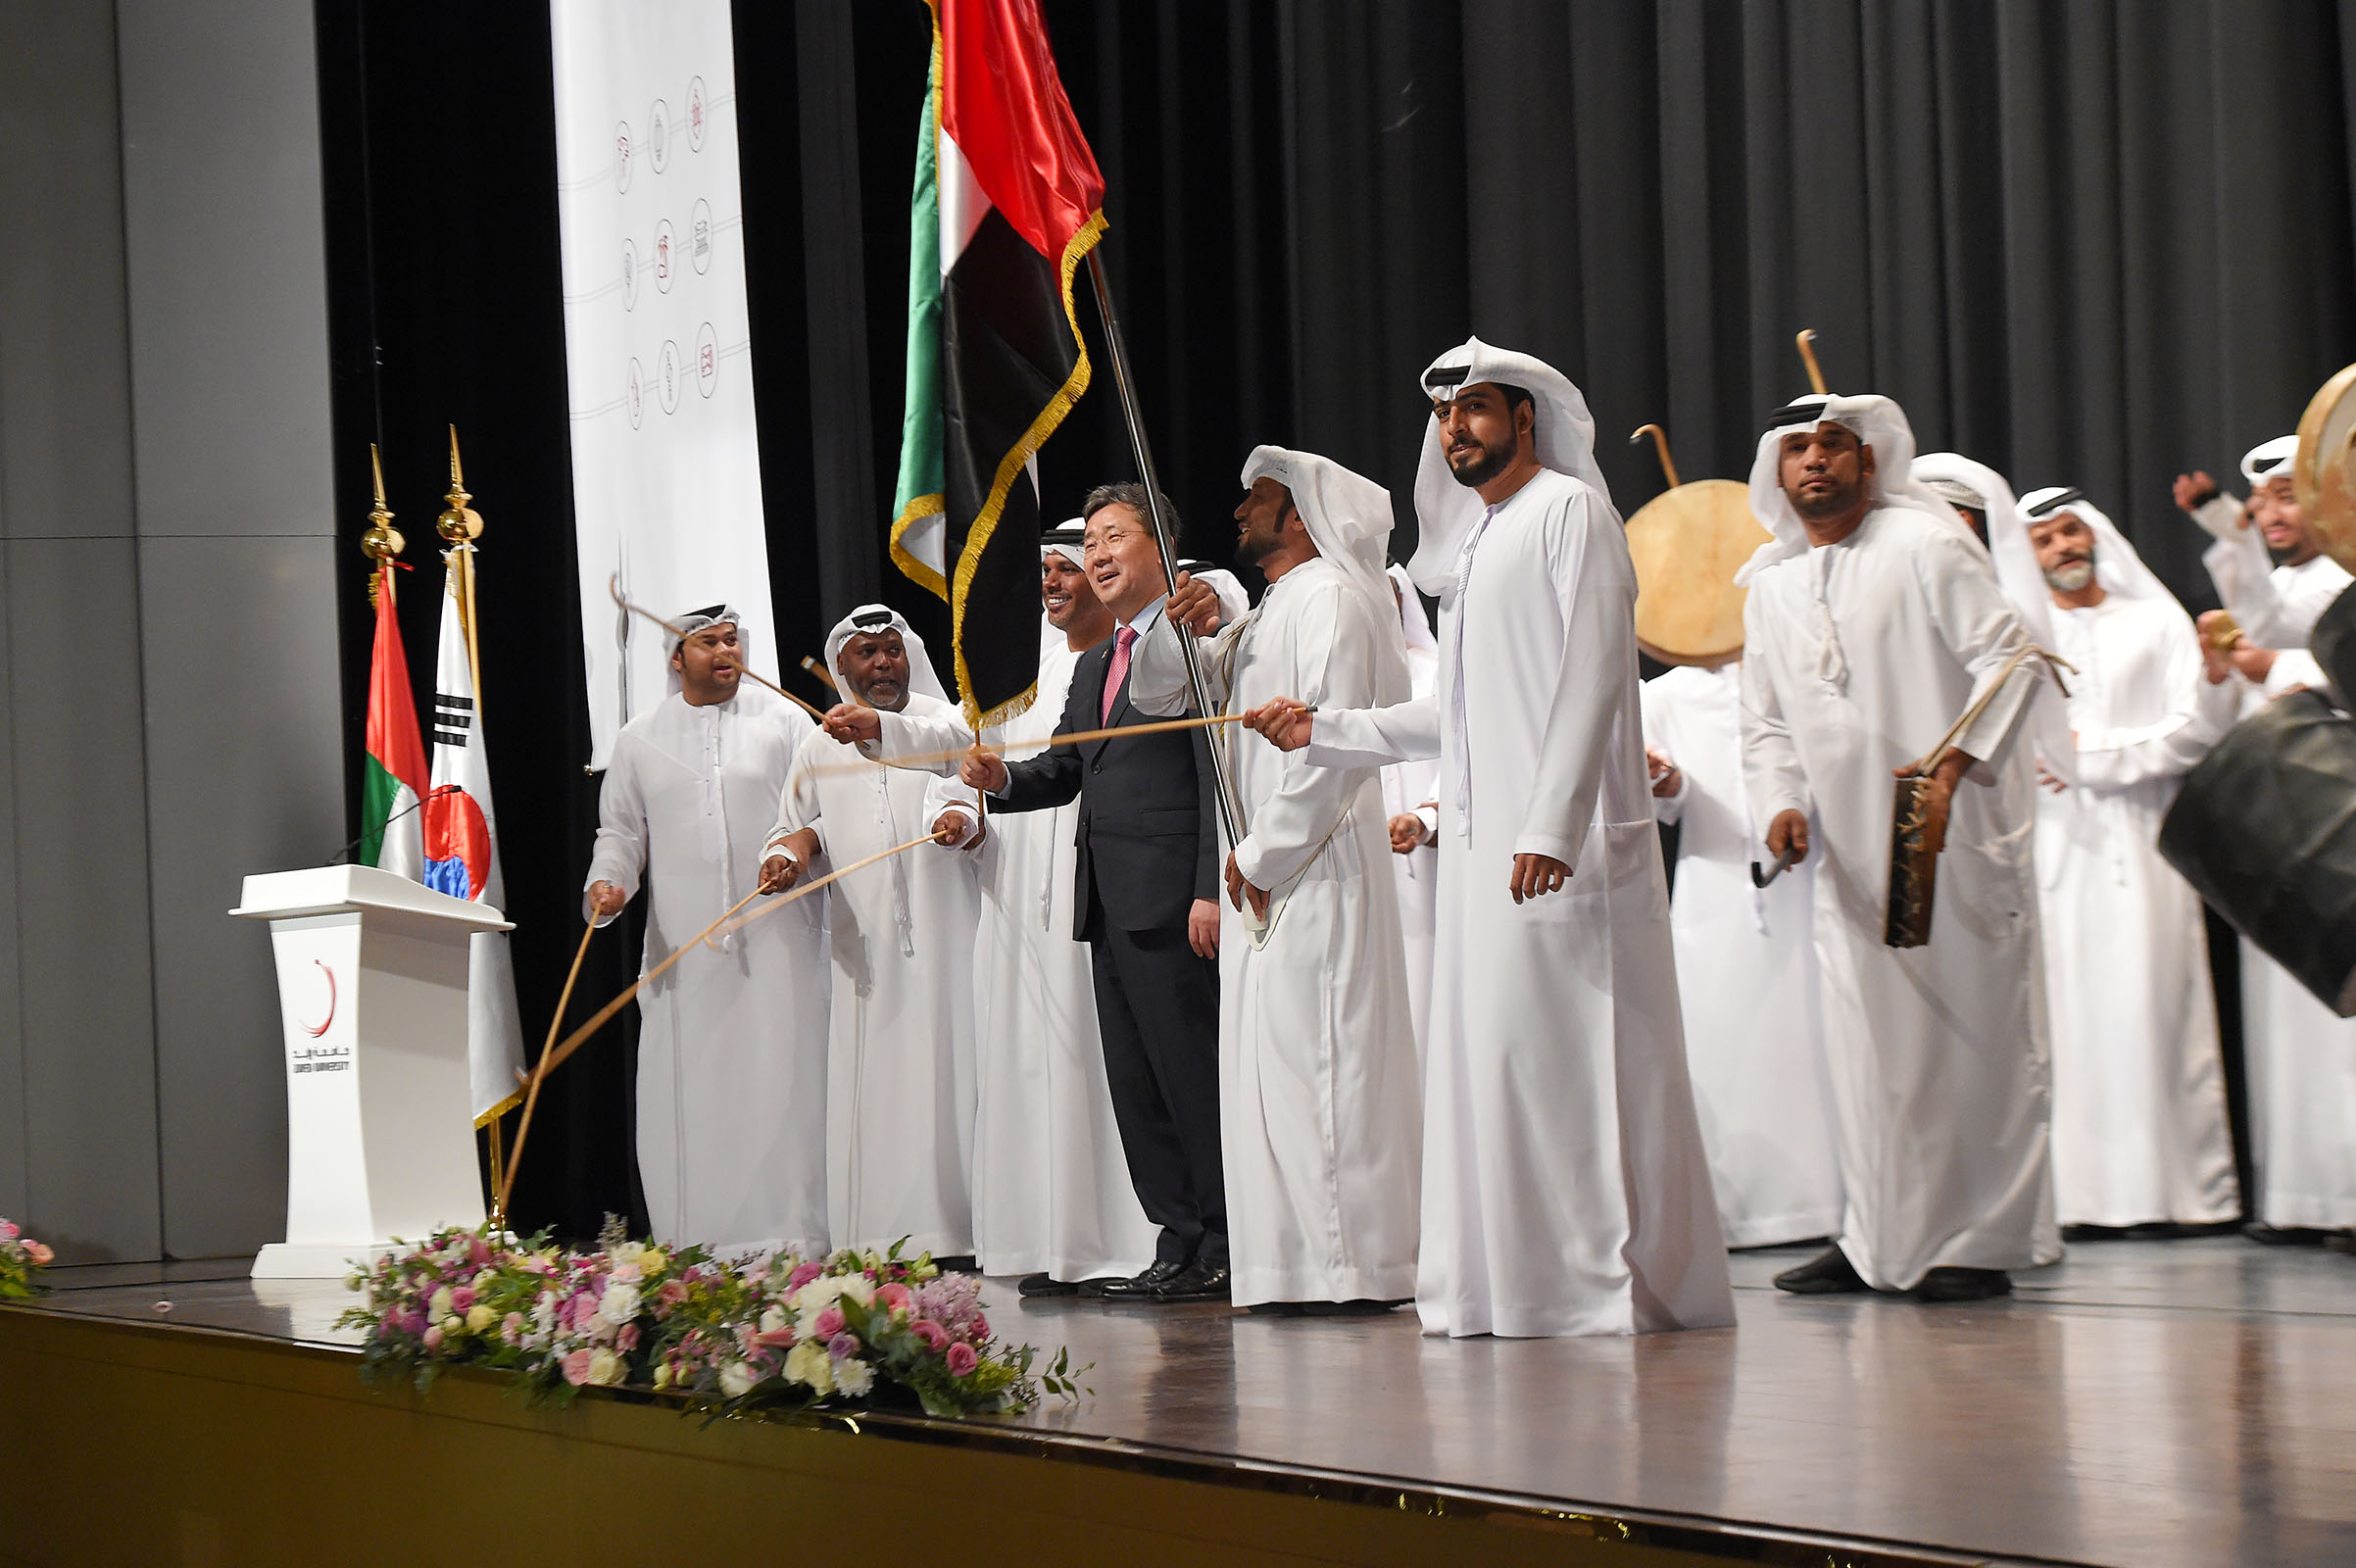 Photo: UAE-Korea Cultural Dialogue kicks-off celebrating 40 years of relations